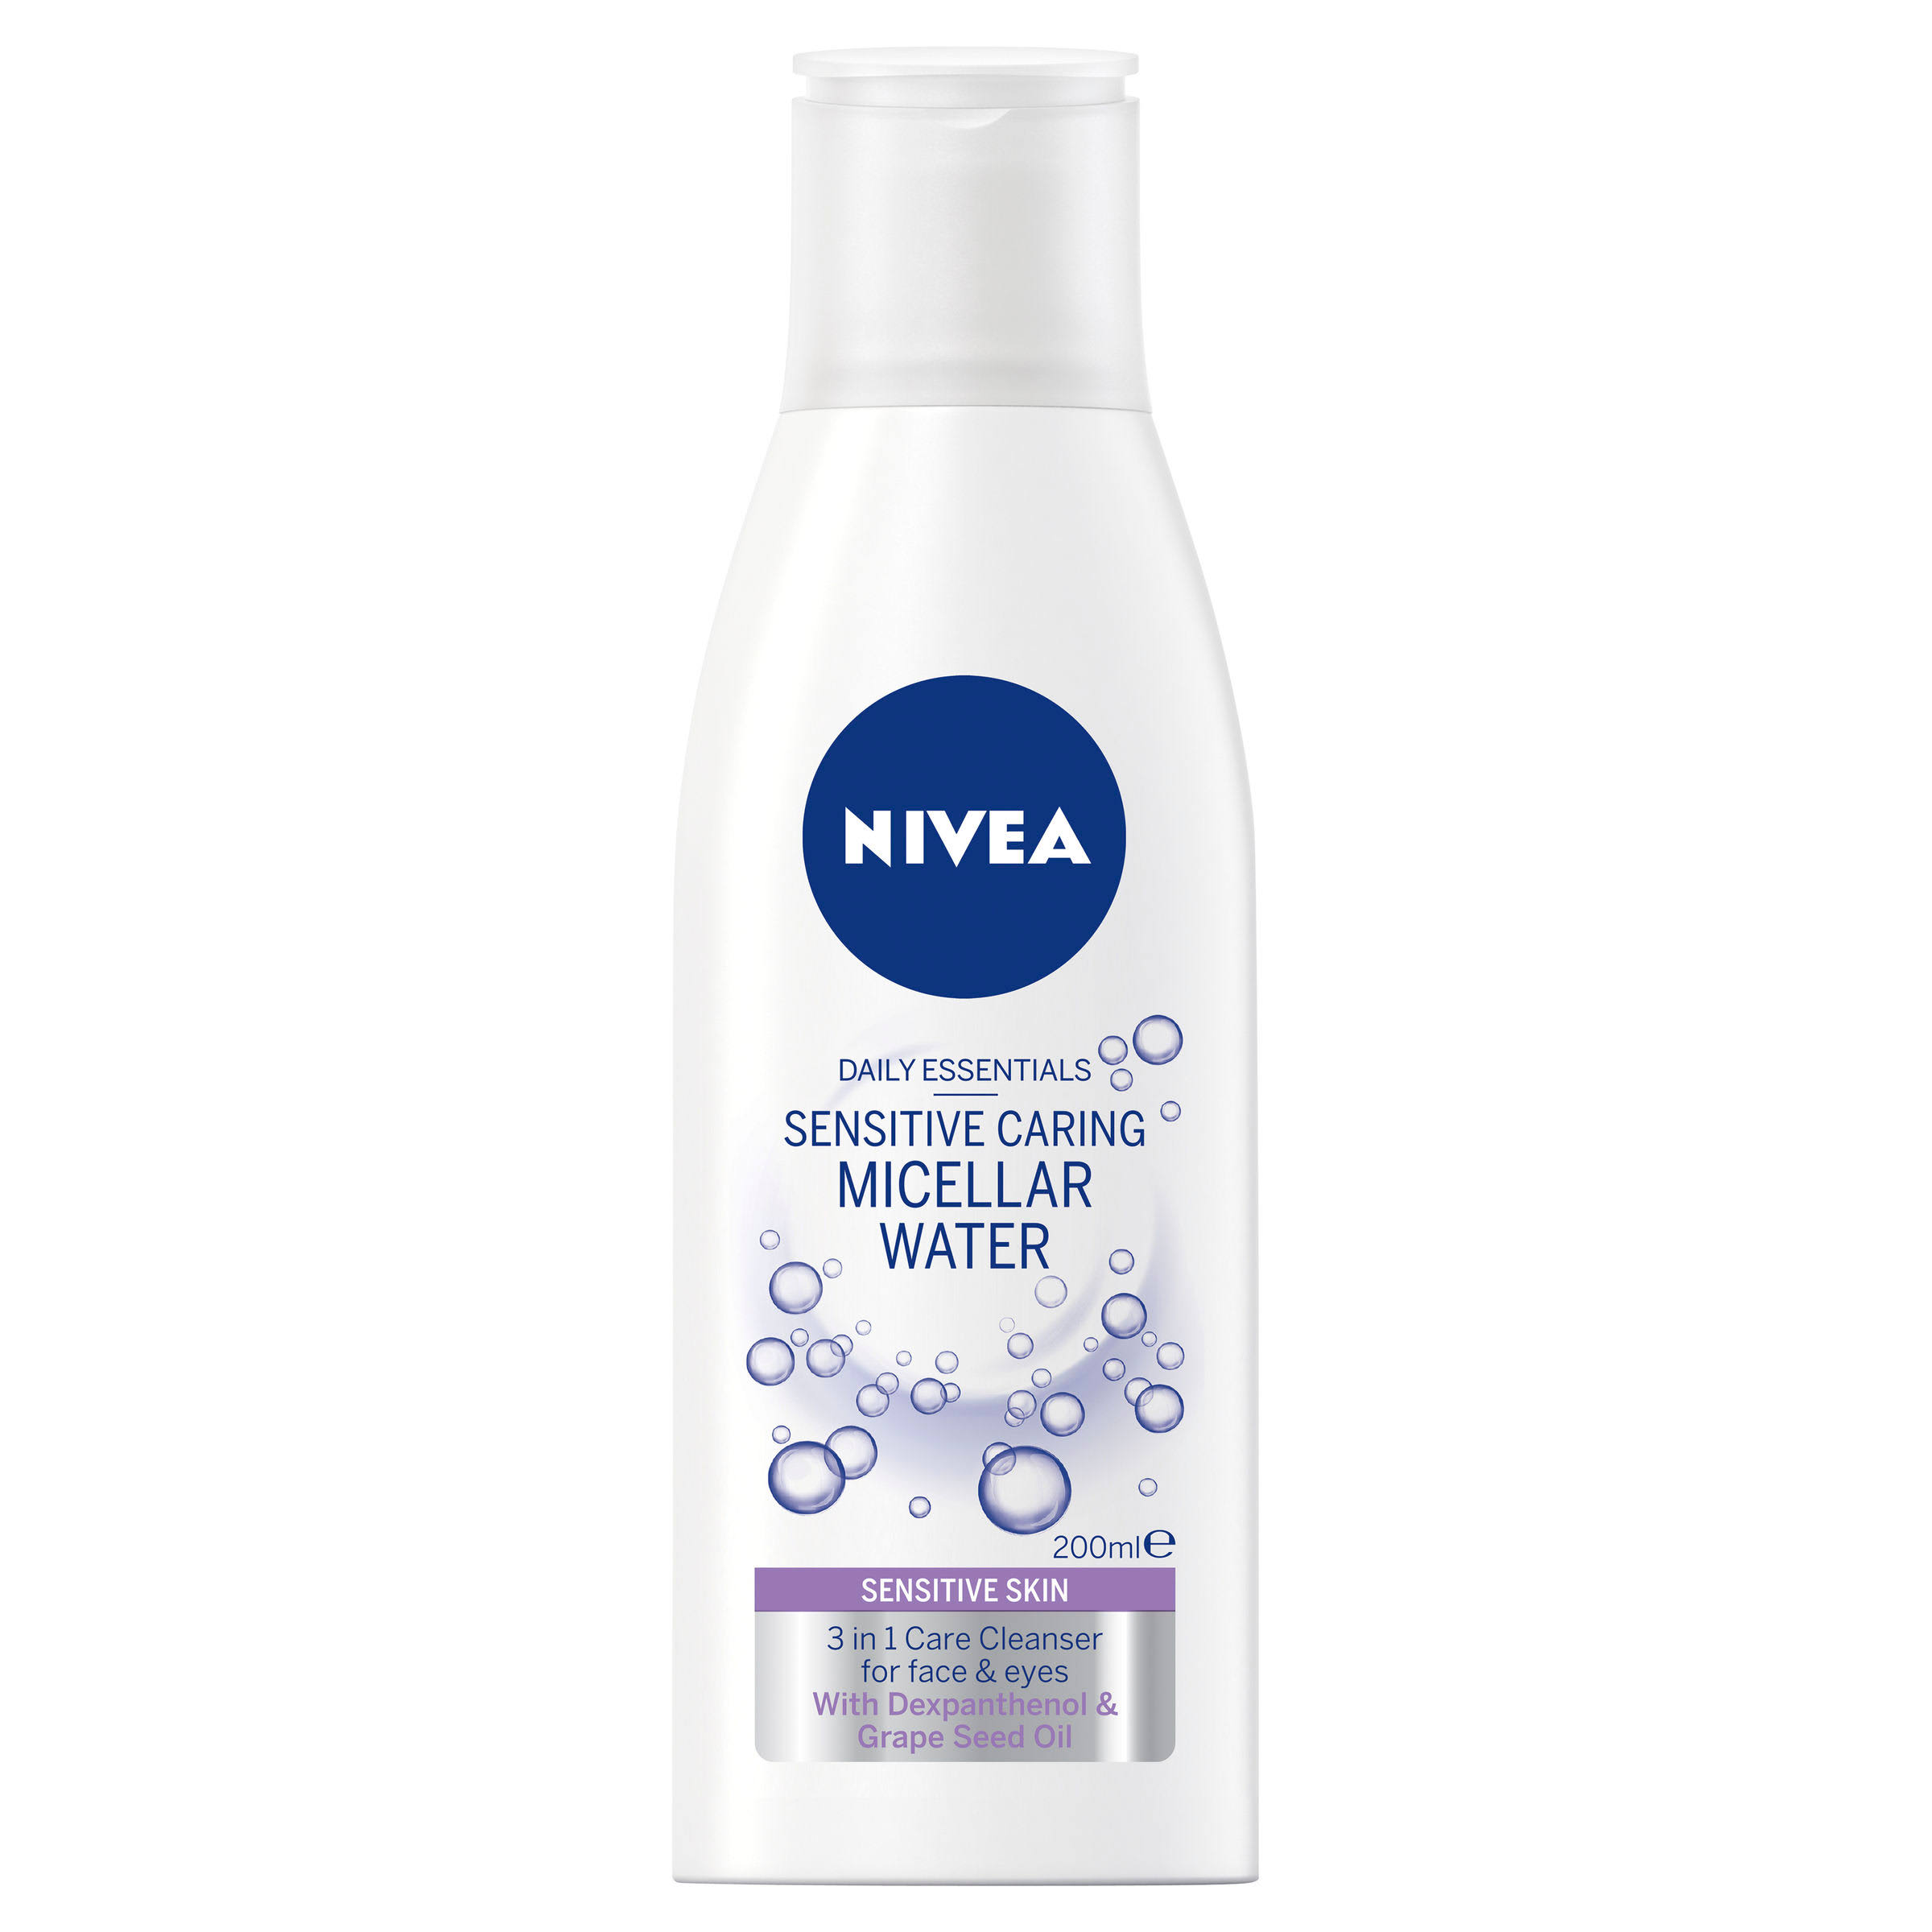 Nivea Daily Essentials Sensitive 3 in 1 Micellar Water 200ml